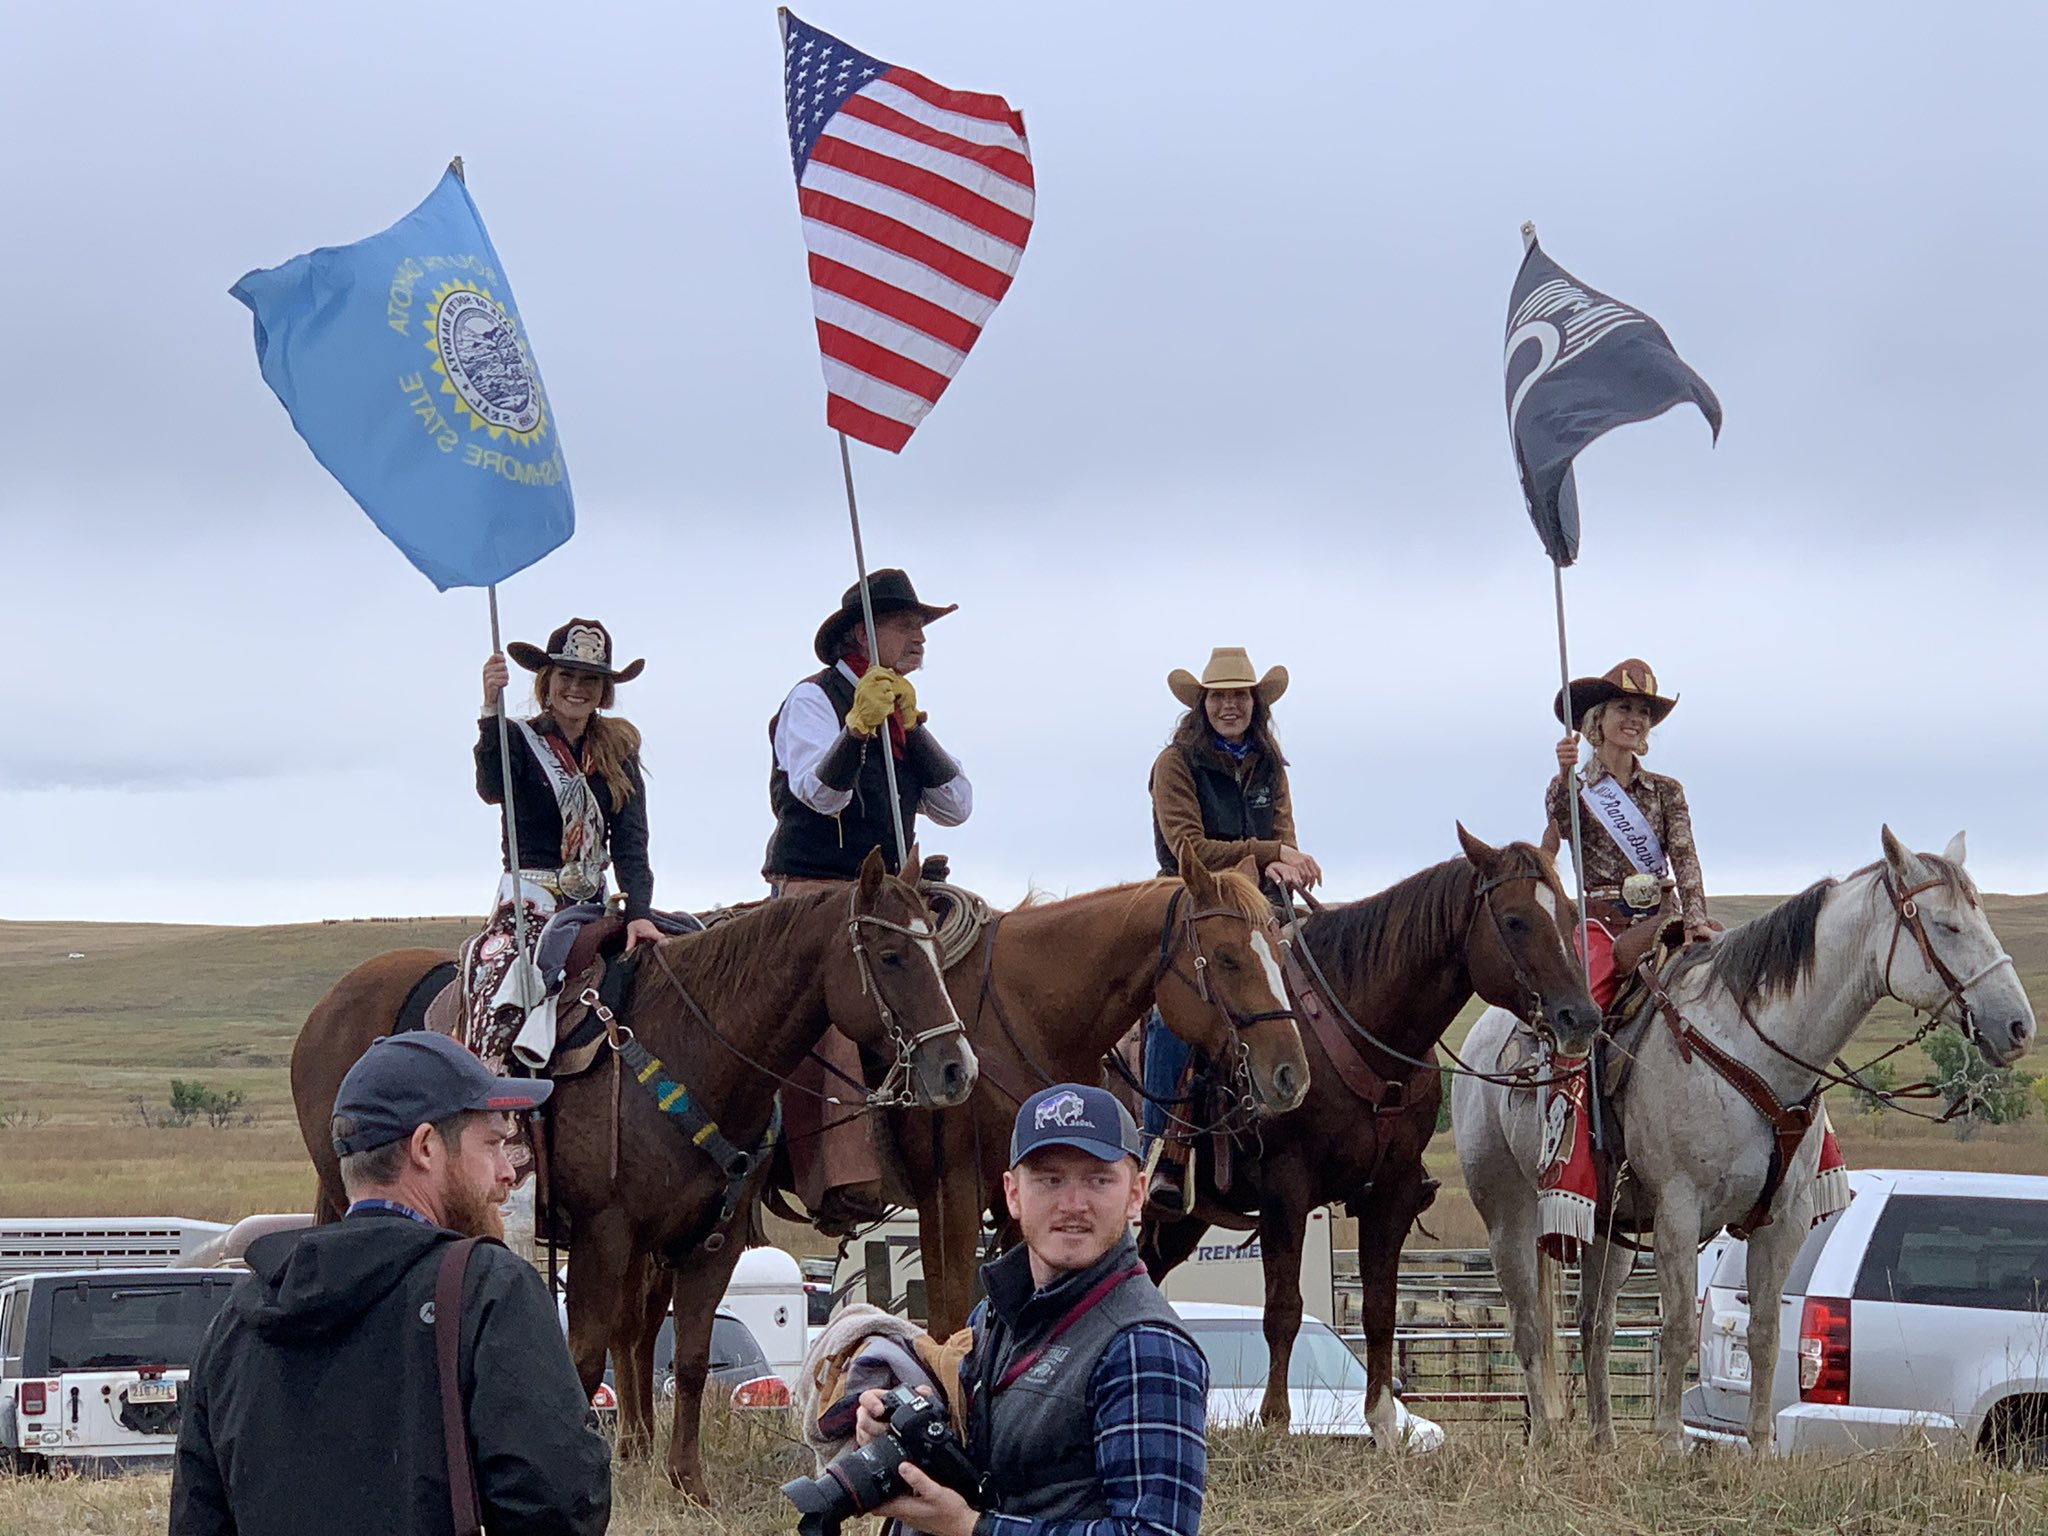 Tim Giago: Revisiting the Buffalo Roundup